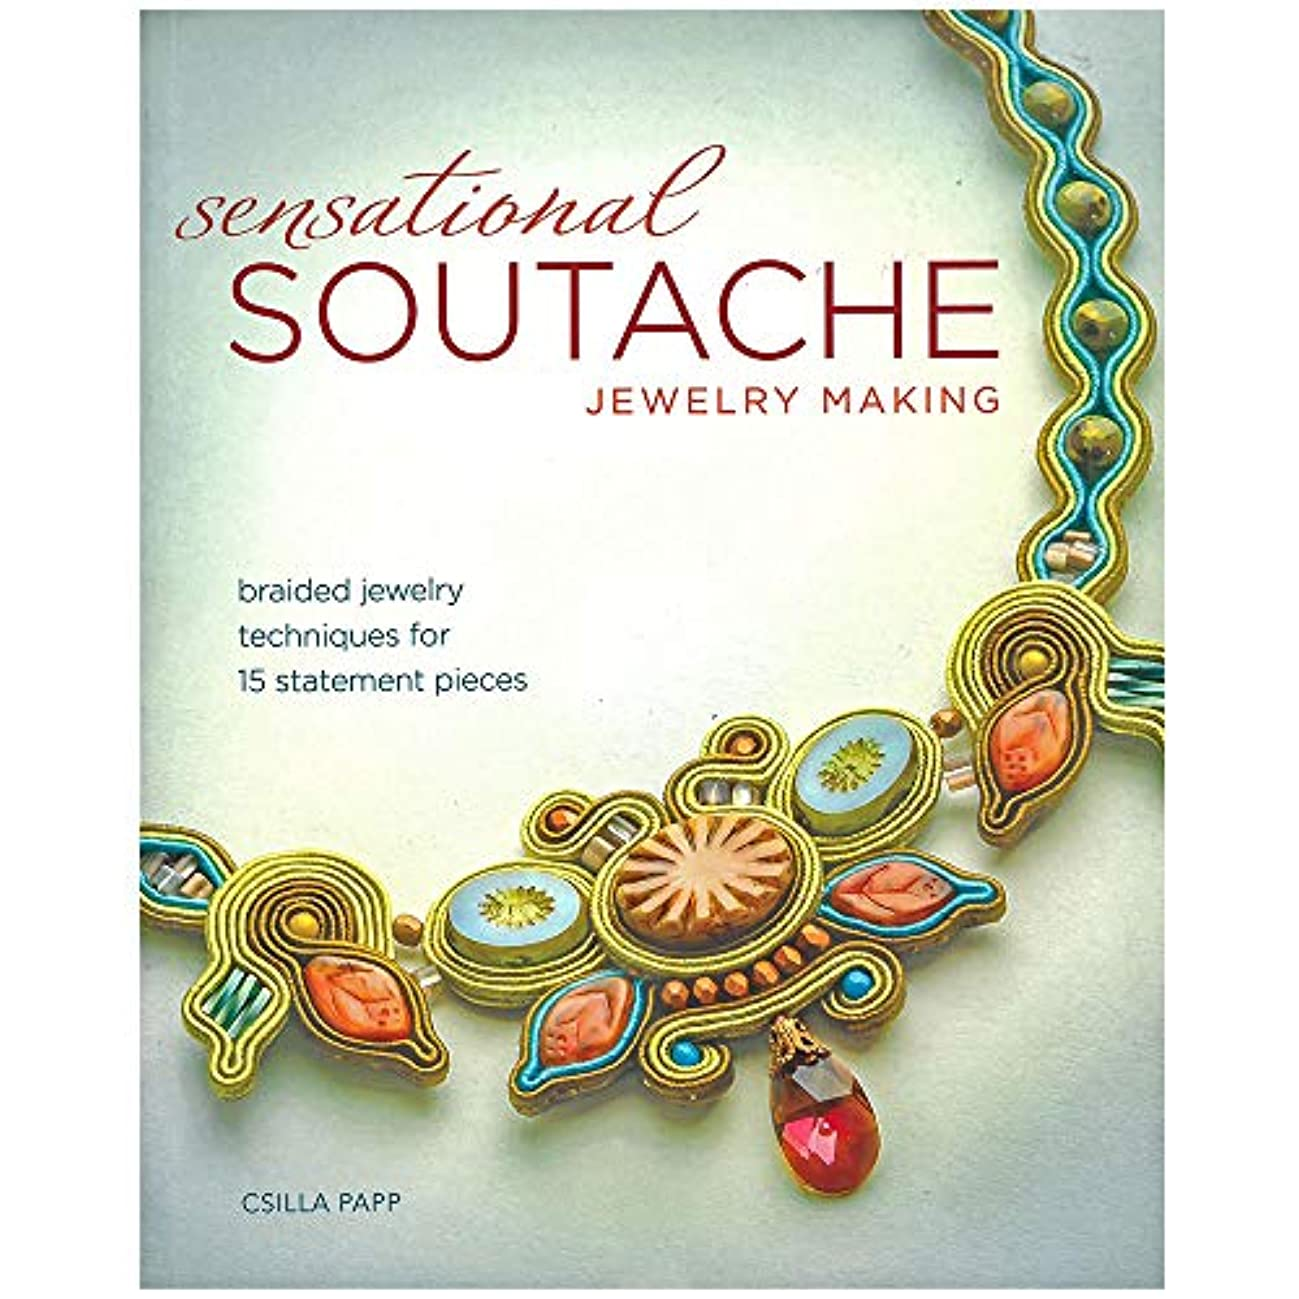 Sensational Soutache Jewelry Making Book – 15 Start to Finish Tutorials Ranging from Easy to Advanced – Written by Beading Expert Csilla Papp